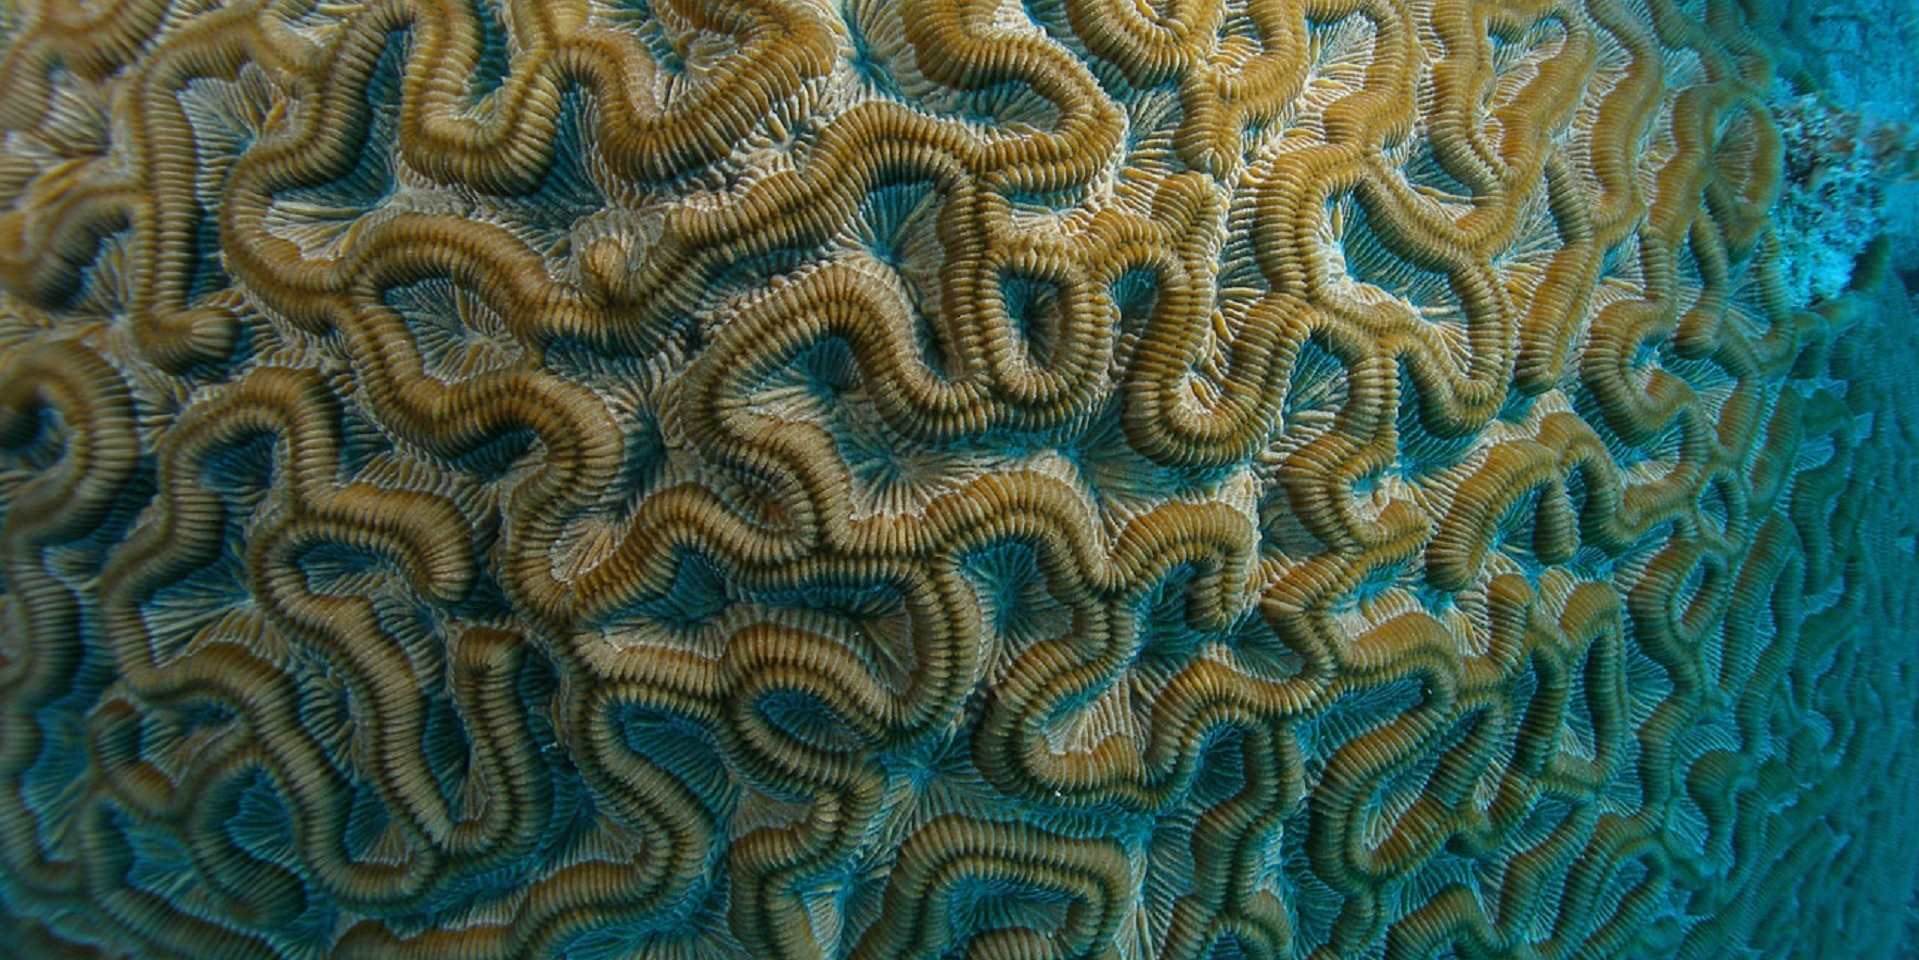 This brain coral is one of the species found off of Mexico in the Carribean Sea. GVI participants collect data on the fish and coral species in the region.